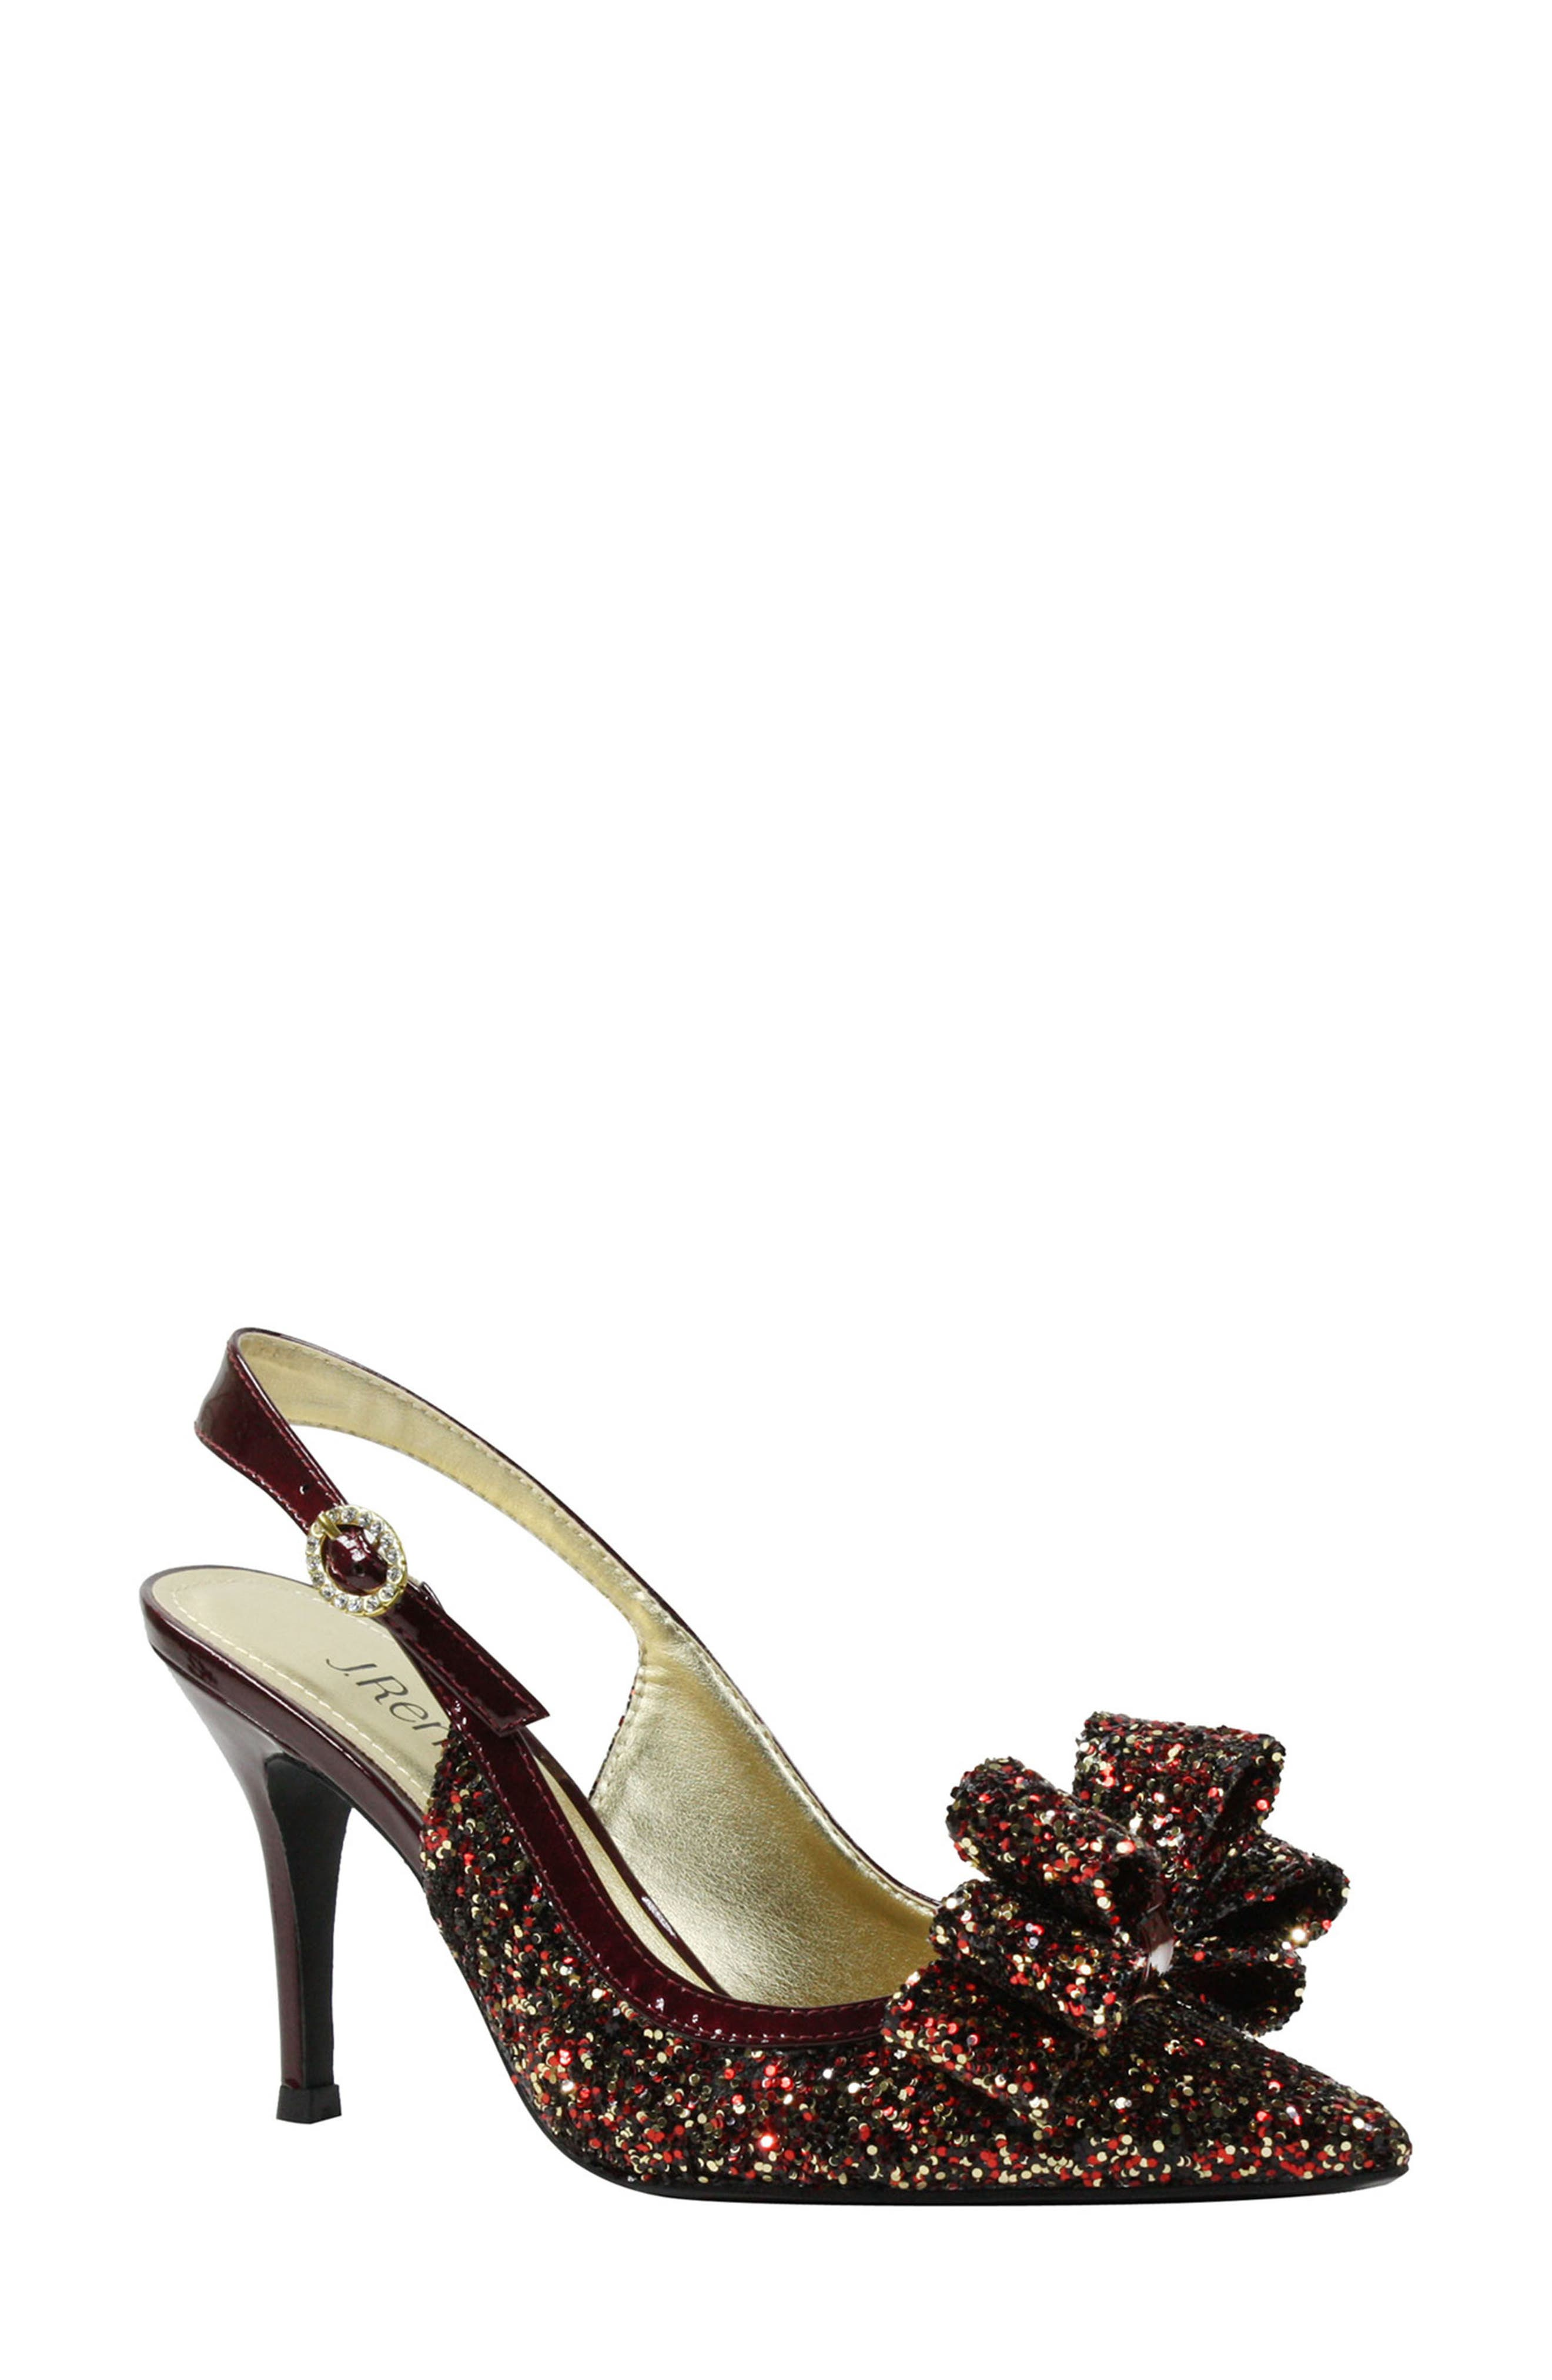 Alternate Image 1 Selected - J. Reneé Charise Slingback Pump (Women)